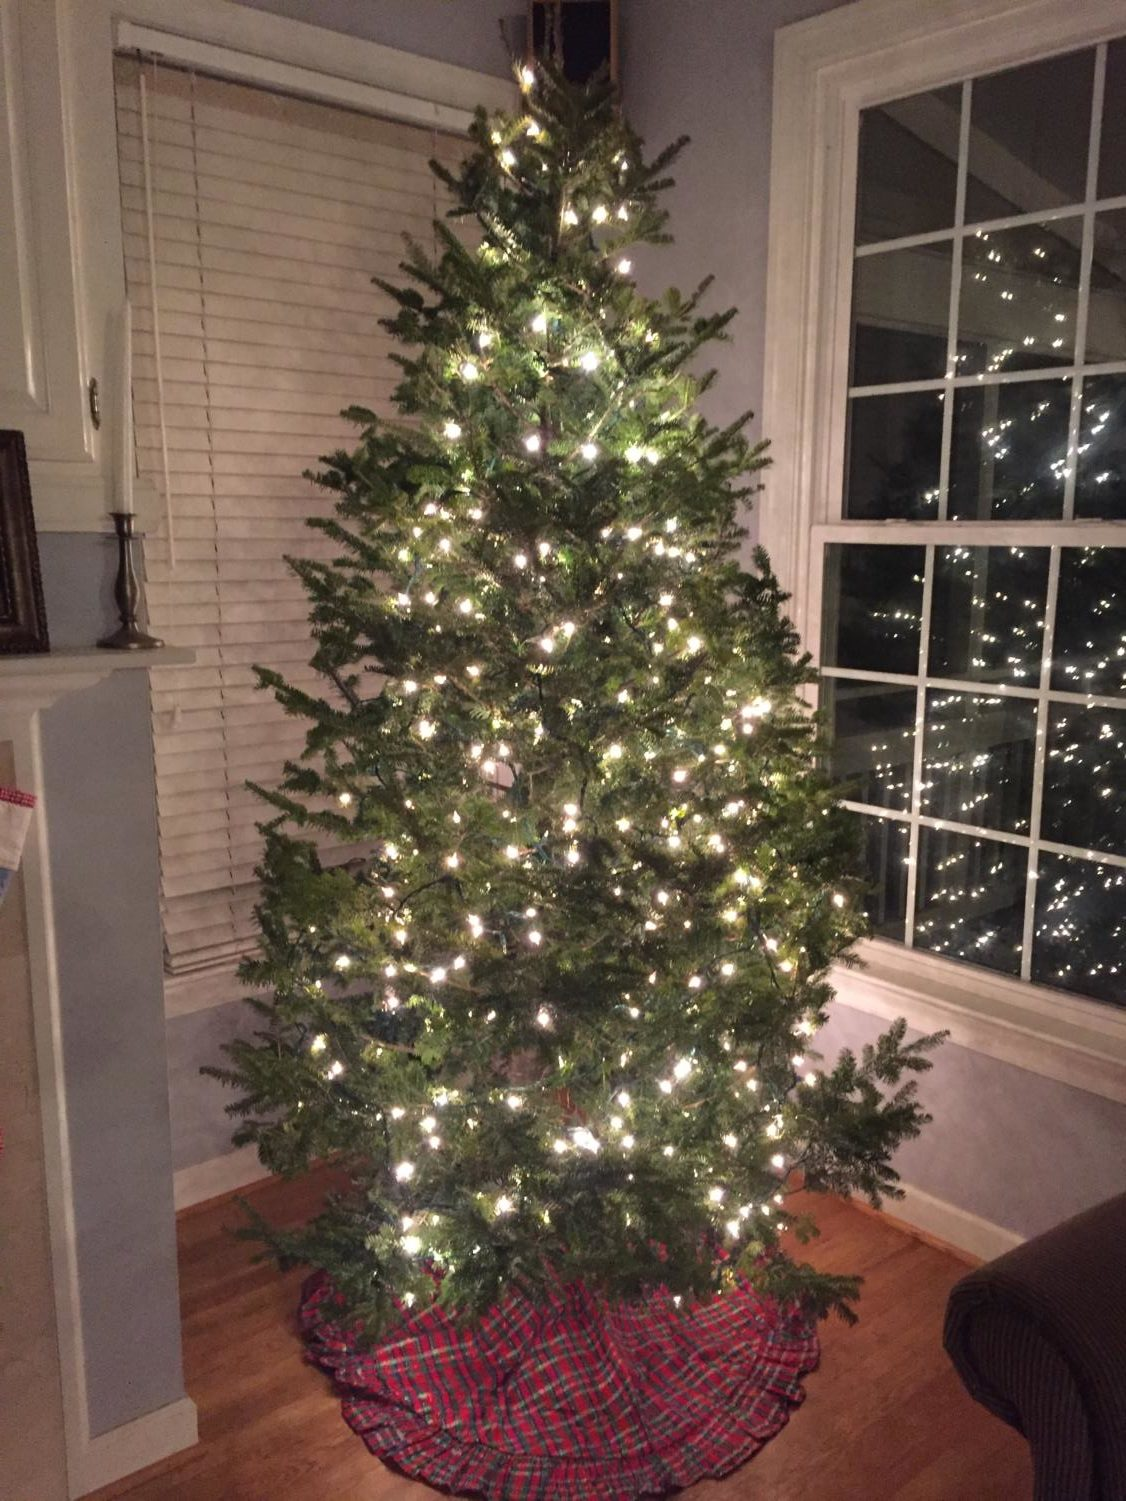 The beautiful Christmas Tree sparkles with Christmas lights before being decorated.